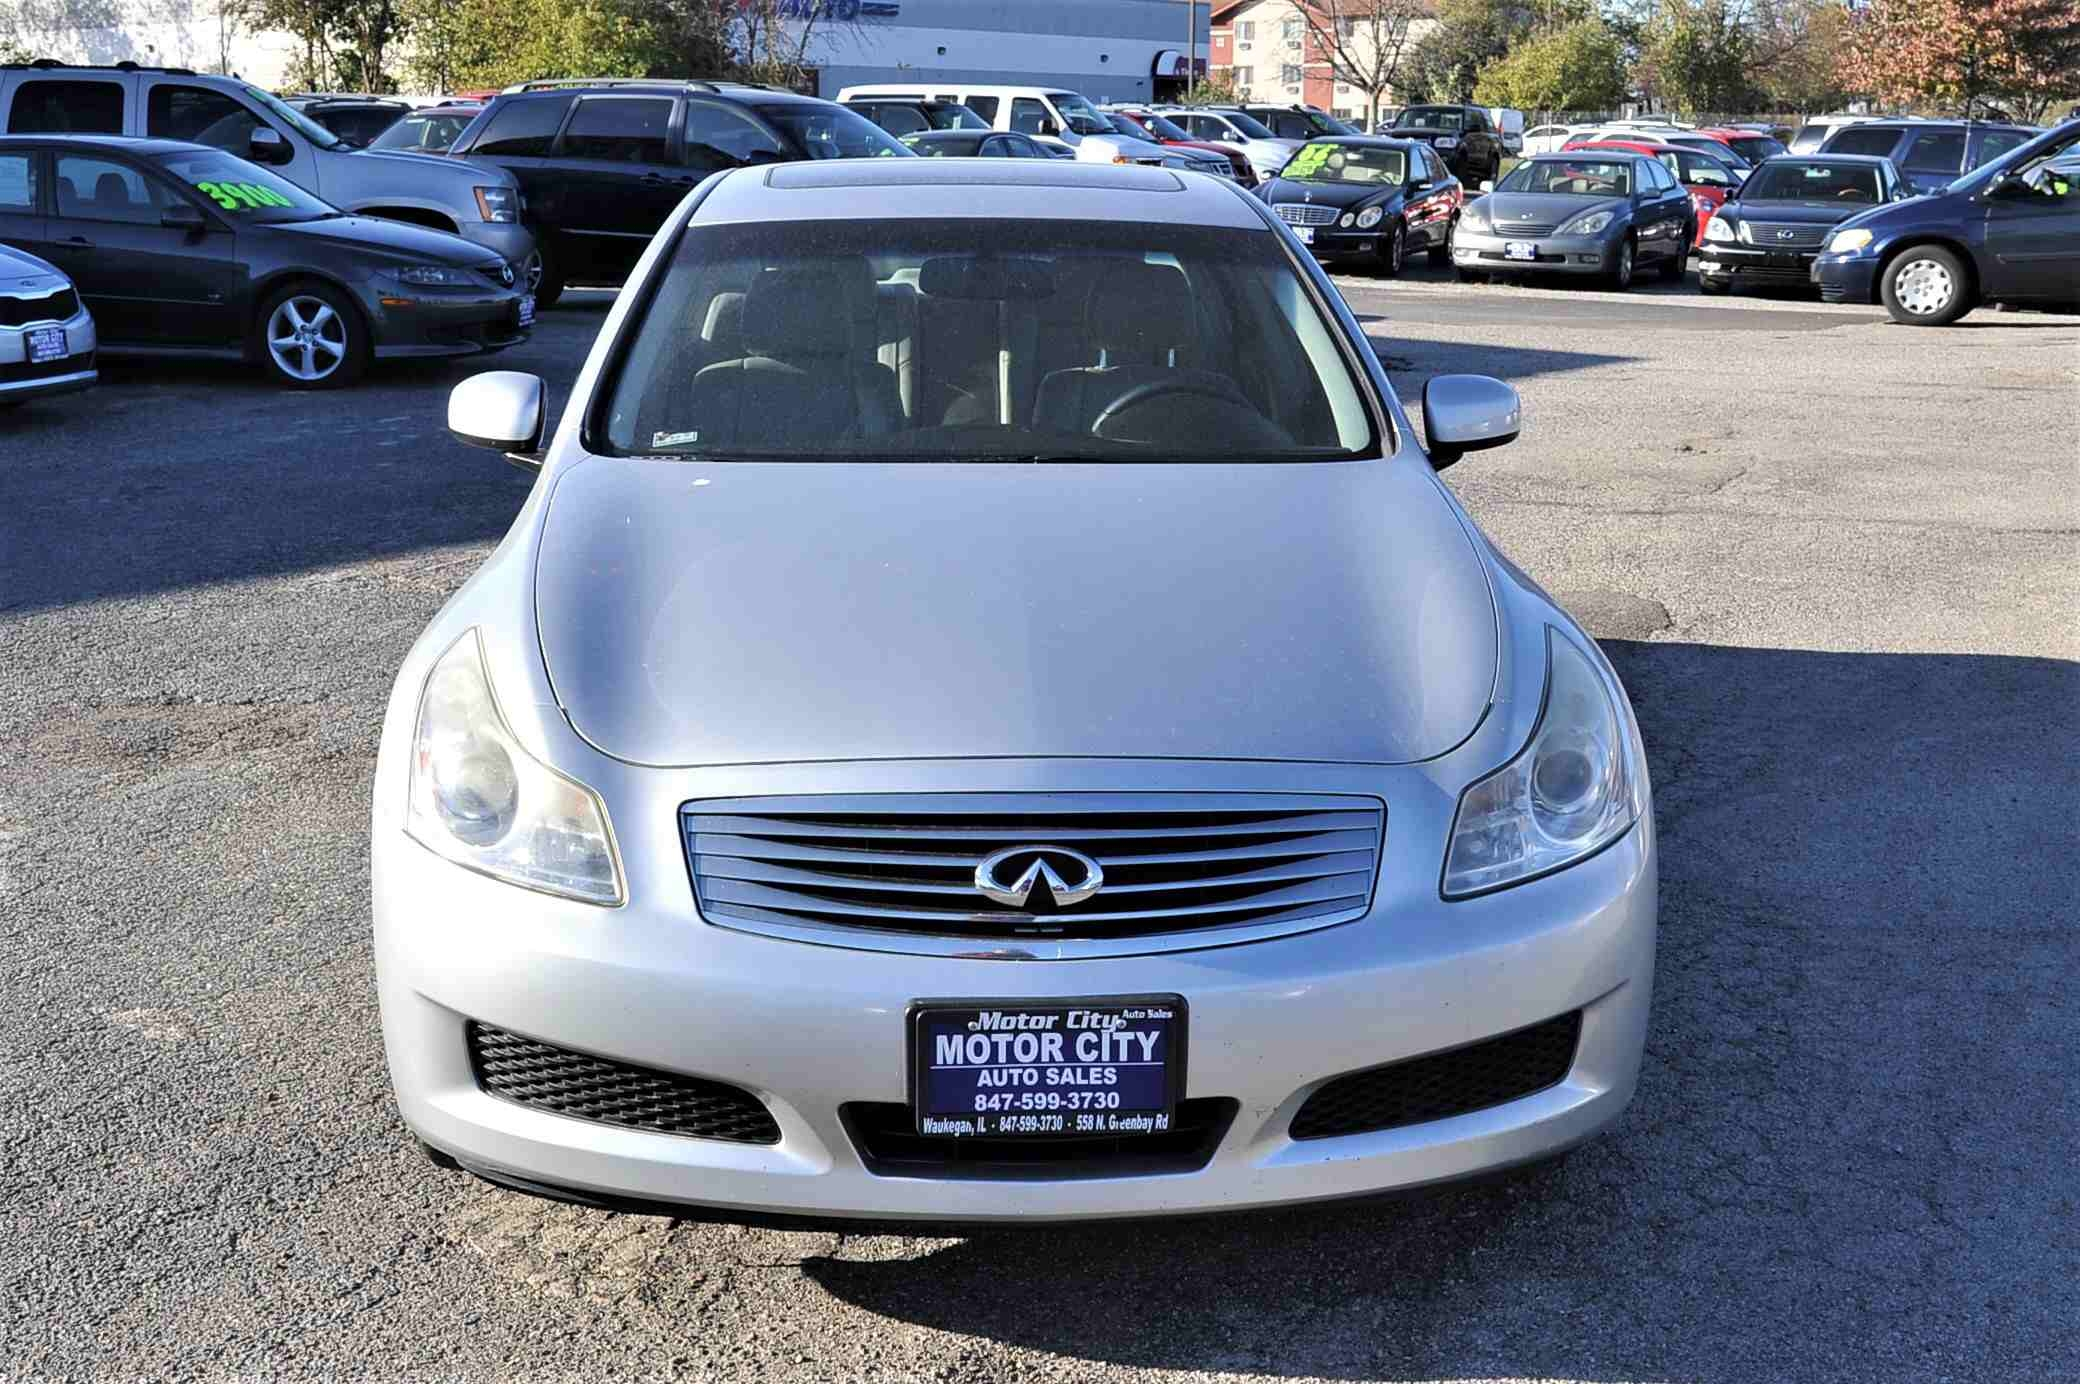 2008 Infiniti G35X Silver Navigation Sedan Used Car Sale Antioch Zion Waukegan Lake County Illinois